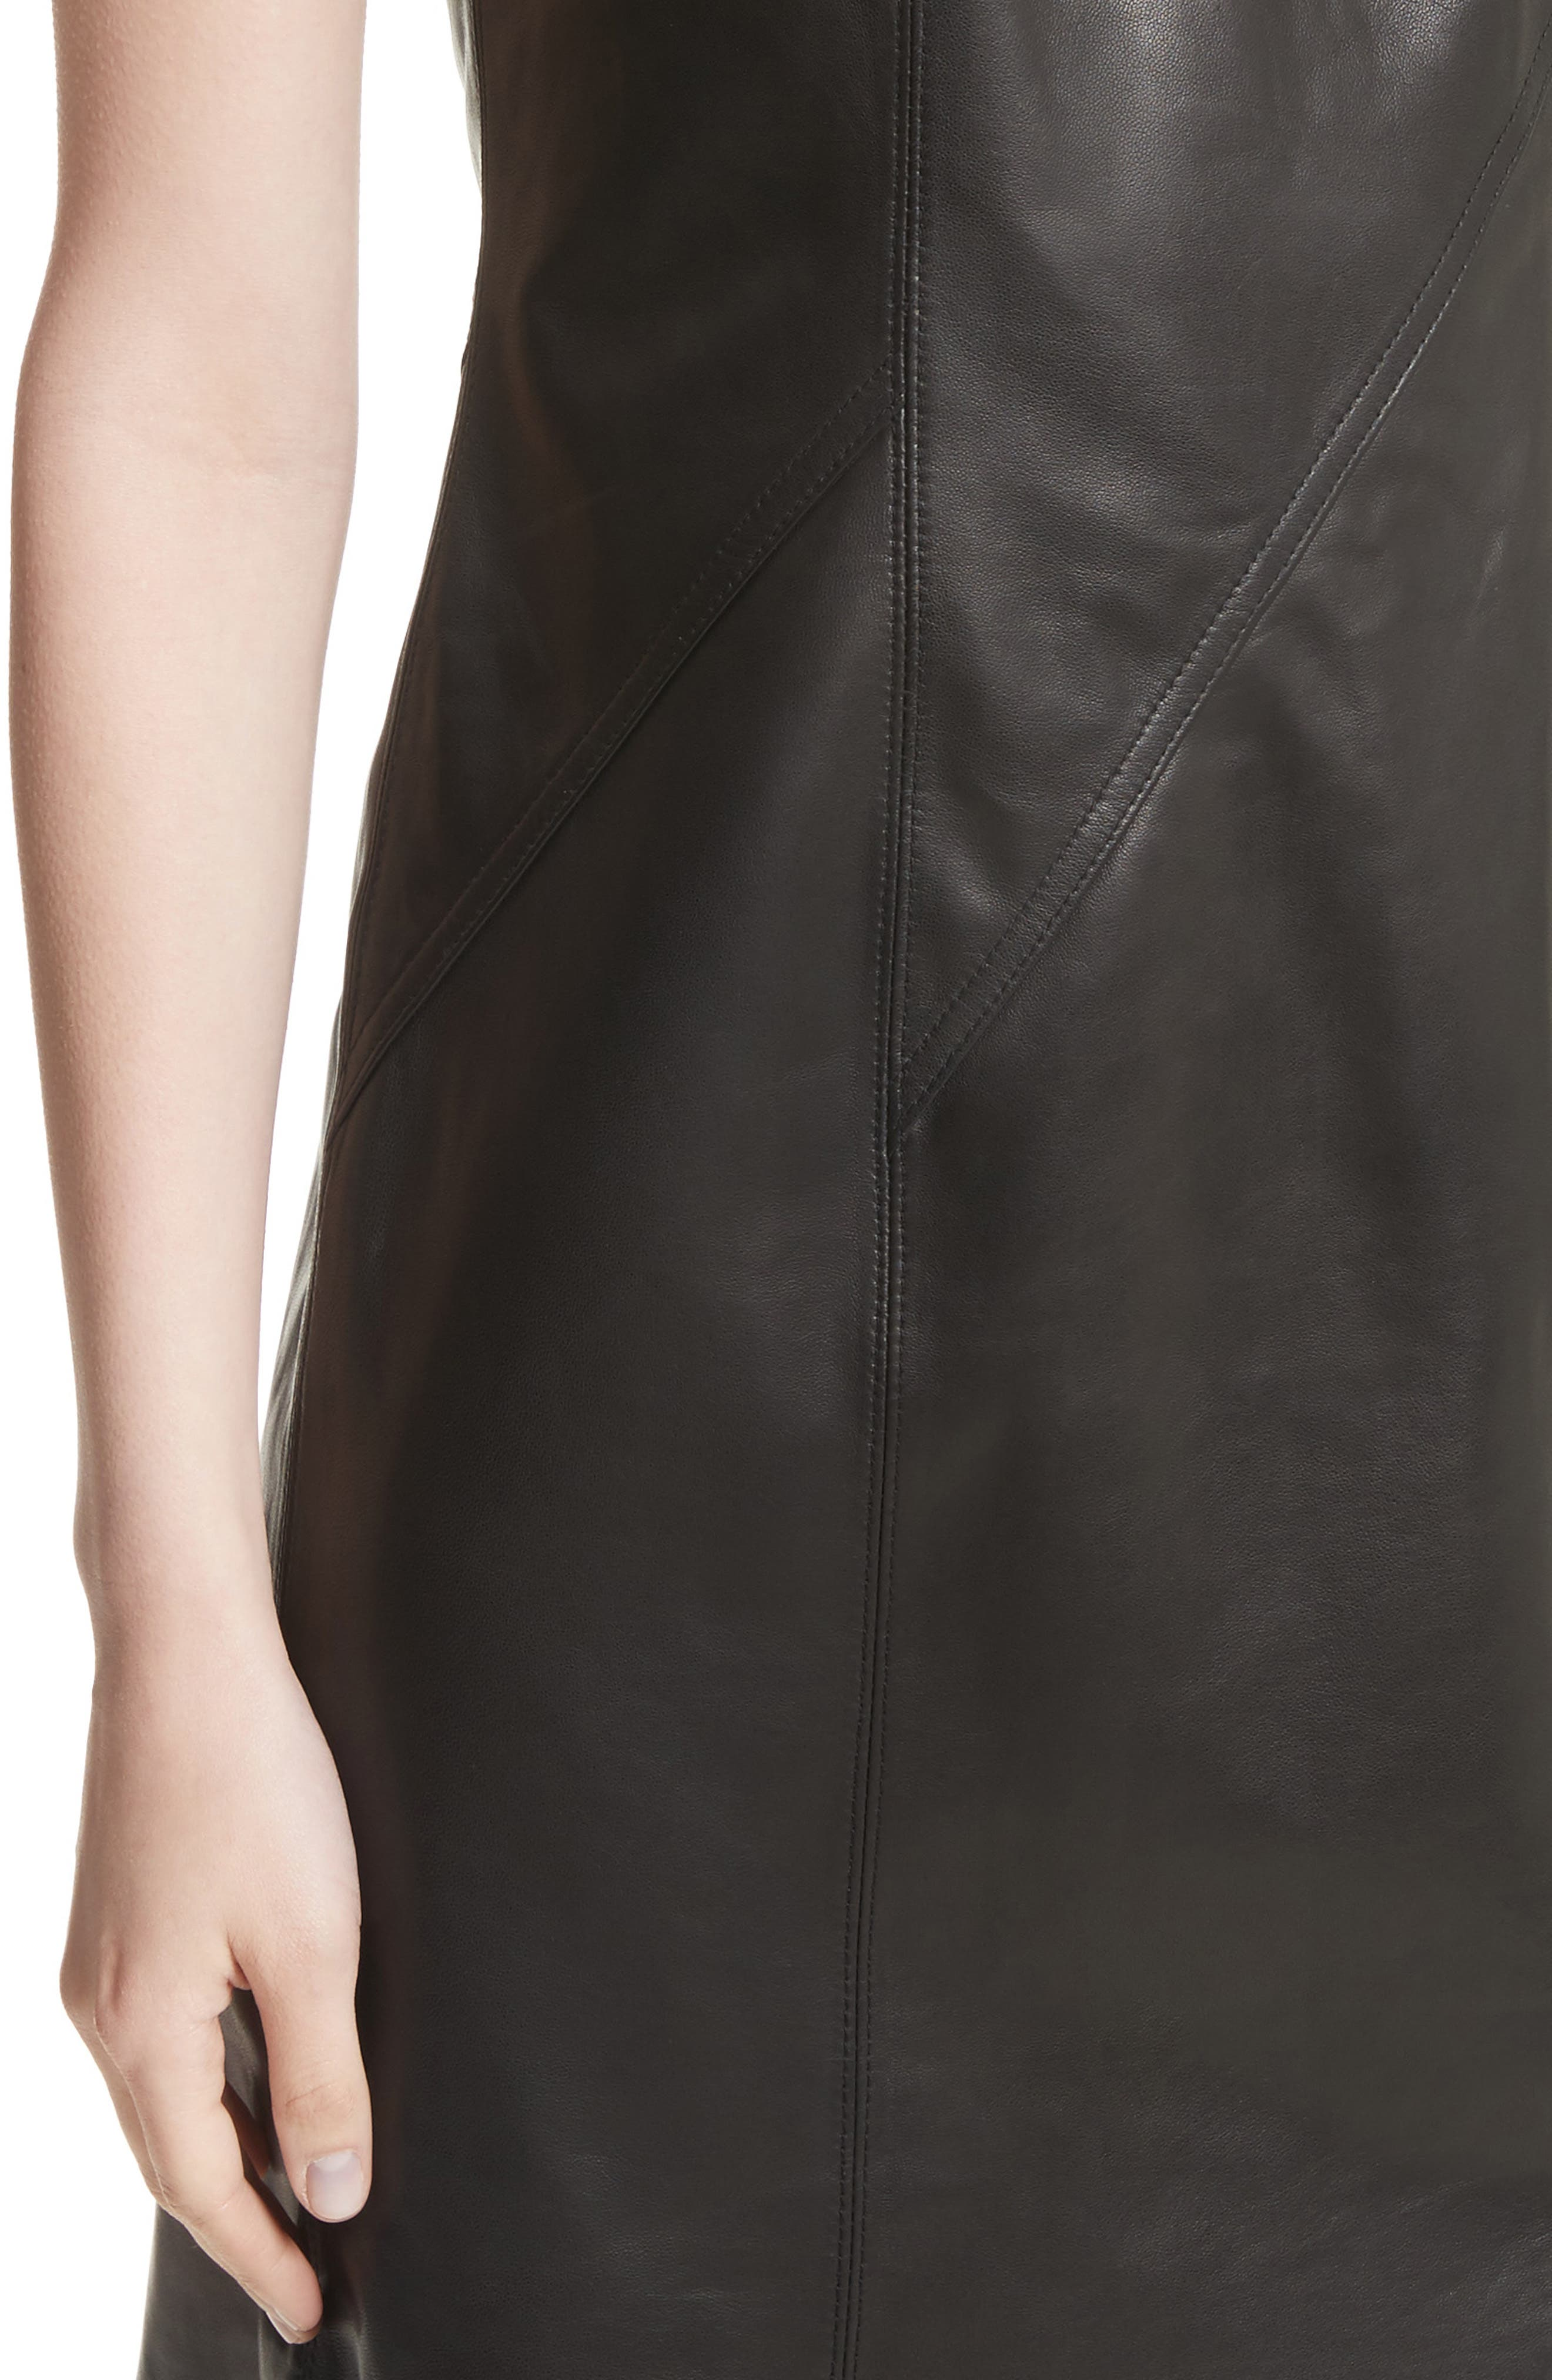 Loxley Leather Dress,                             Alternate thumbnail 4, color,                             001